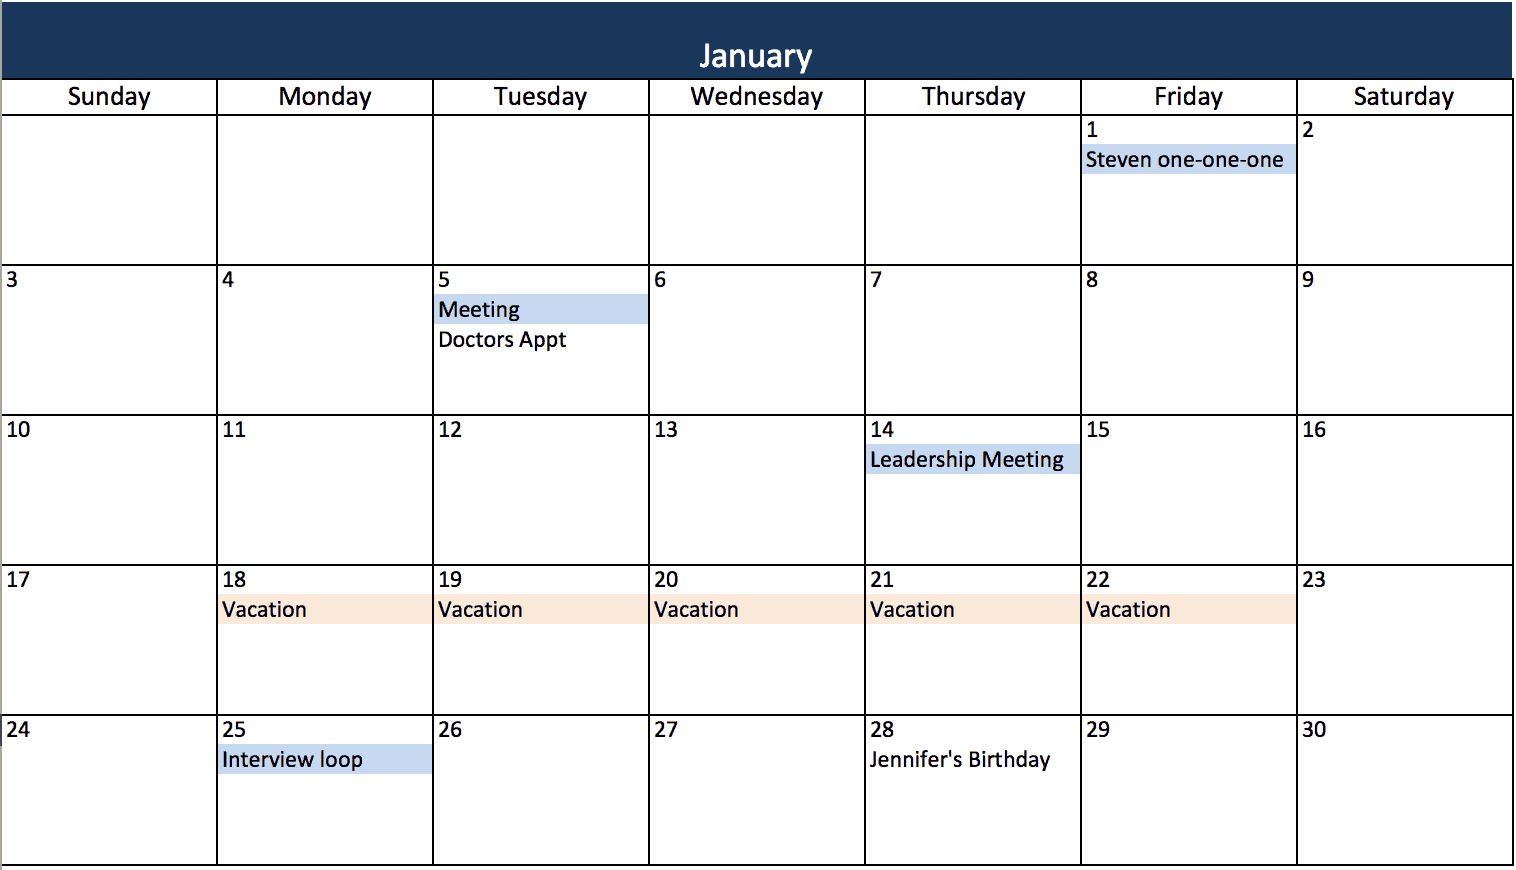 Monthly Calendar In Excel Format : Make a calendar in excel includes free template